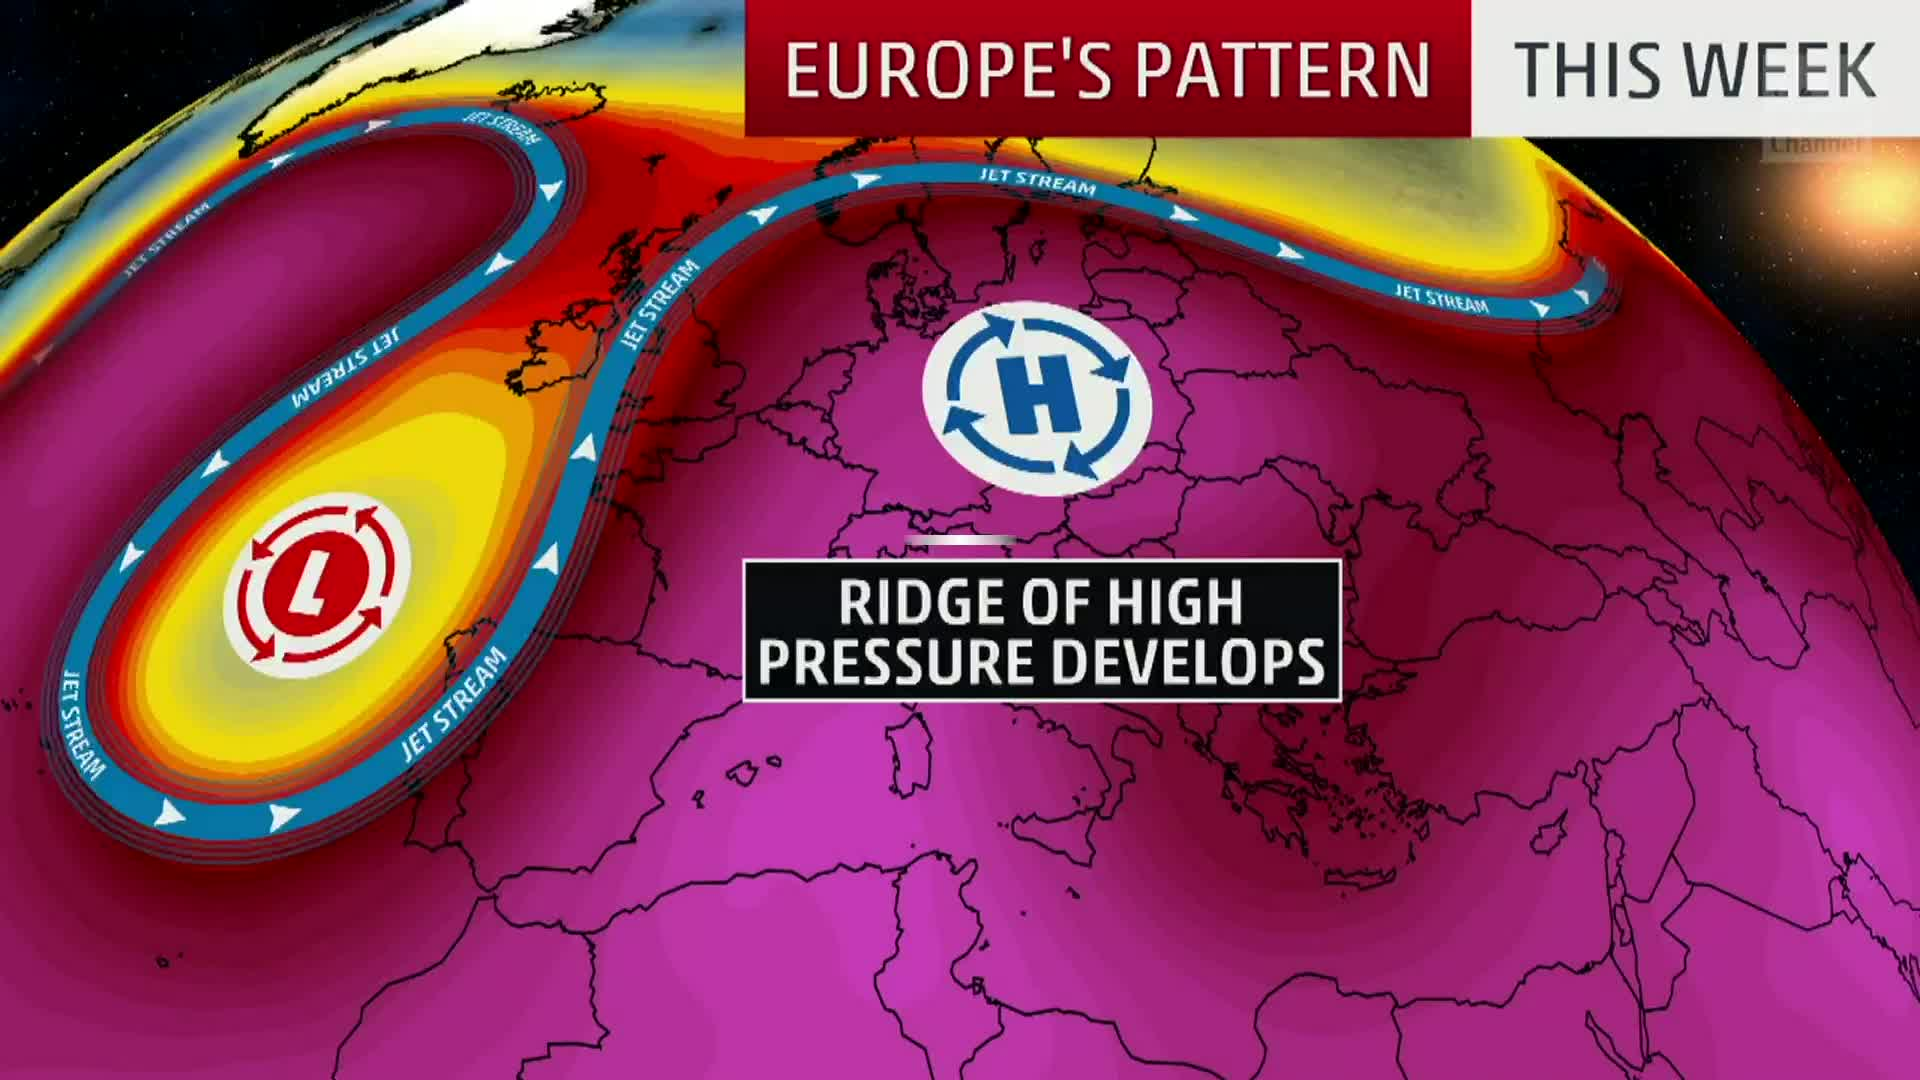 A vicious heat wave this week could produce all-time record highs at multiple European cities. This heat wave will gin up some of the hottest June temperatures ever recorded in western and northern Europe.